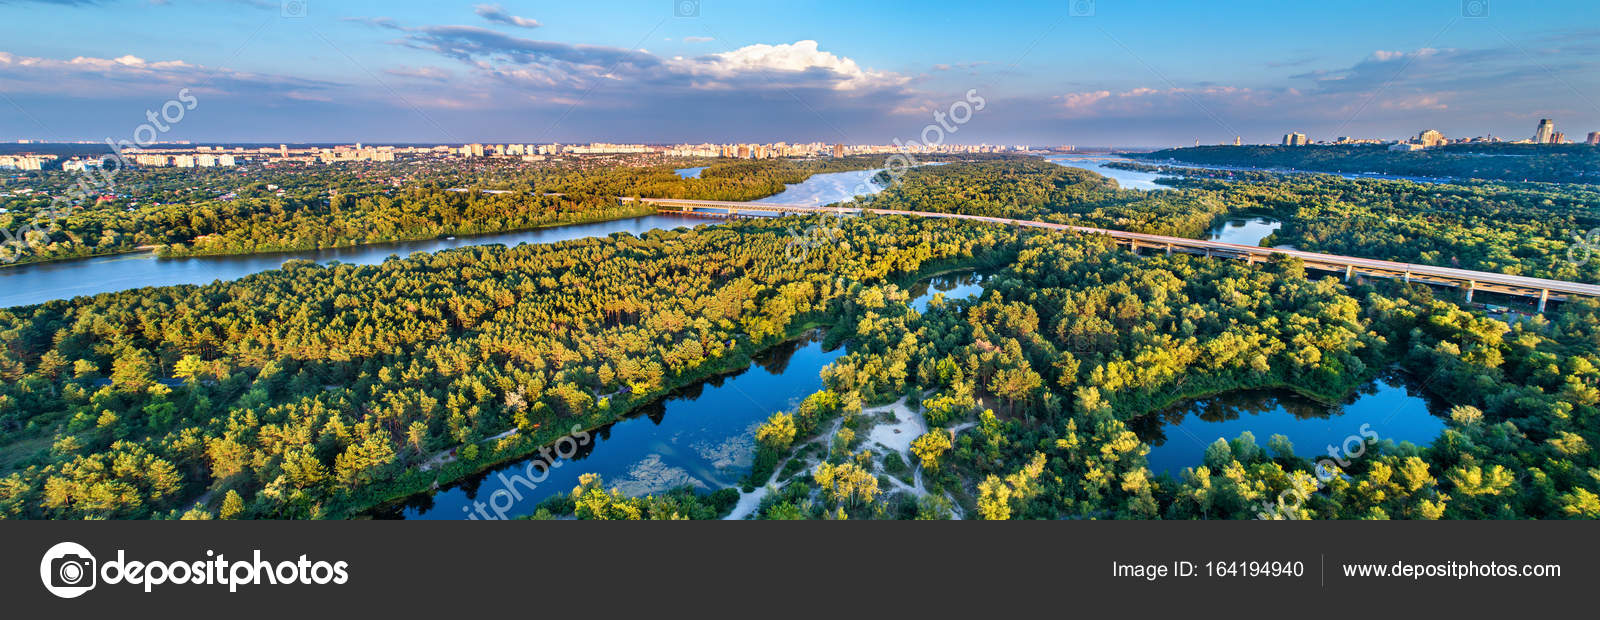 Aerial view of Trukhaniv Island on the Dnieper river in Kiev